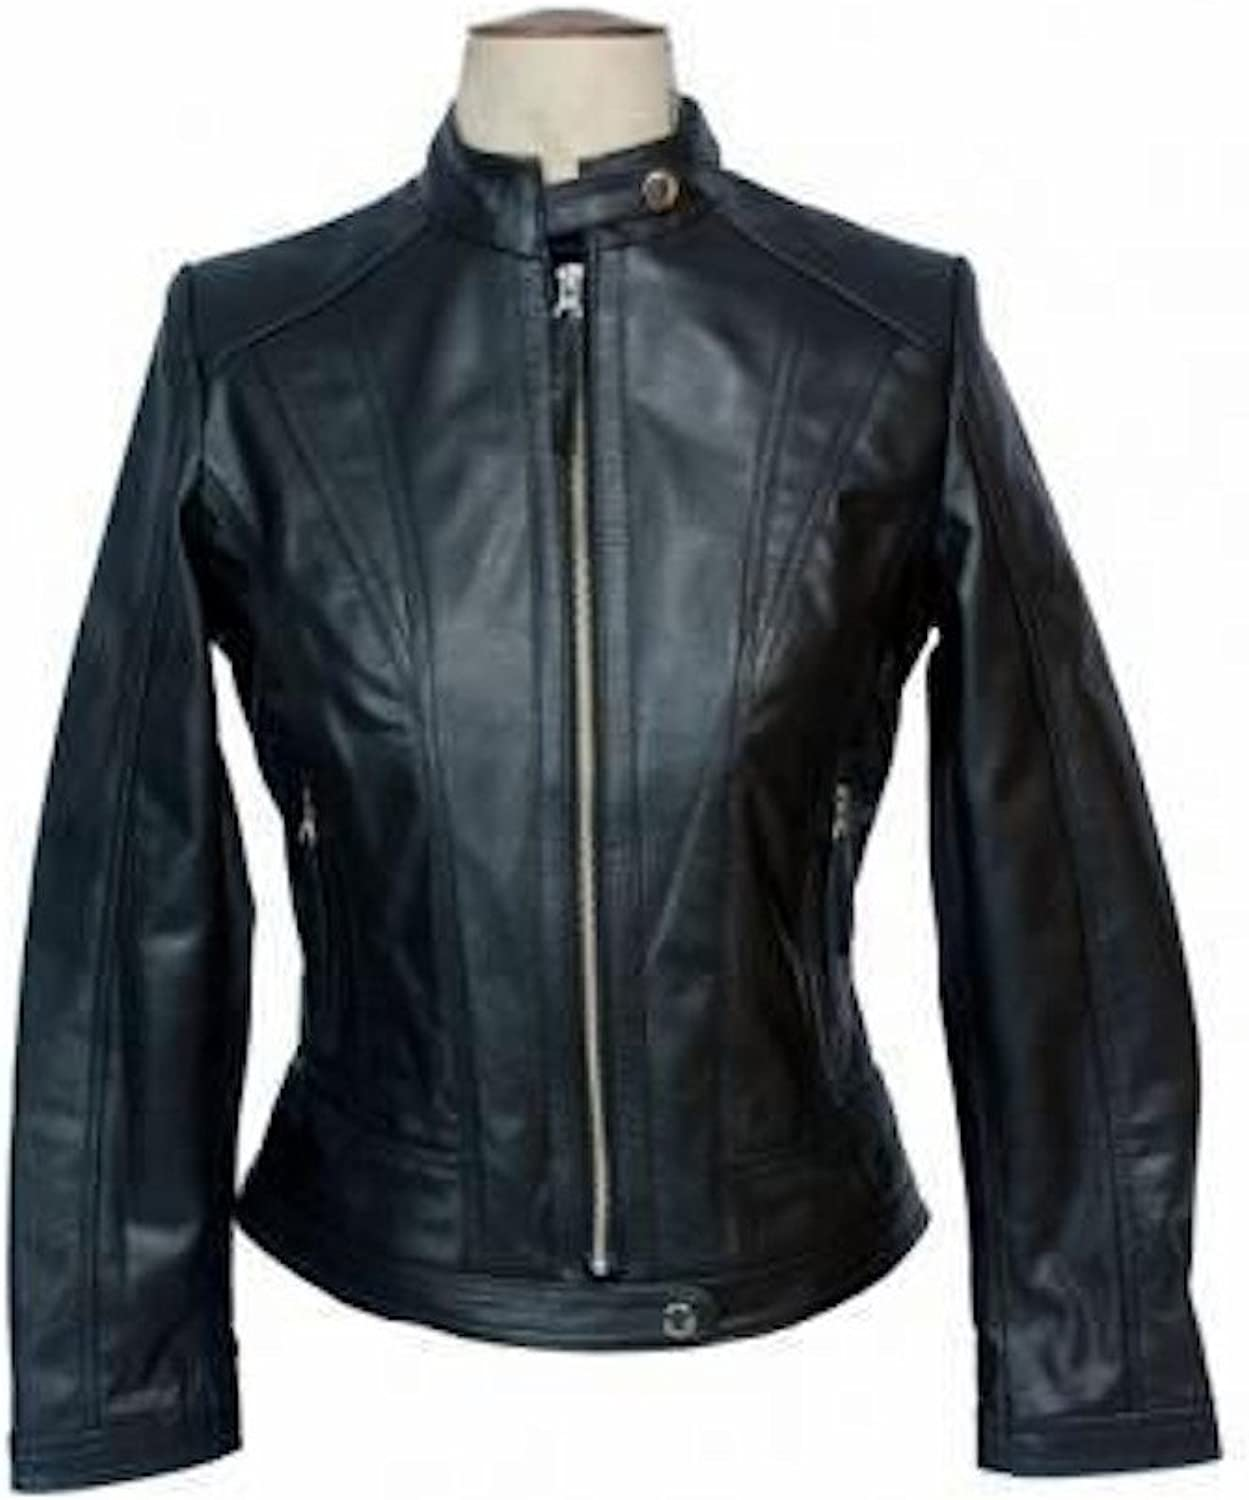 Fadcloset Deception Womens Leather Jacket